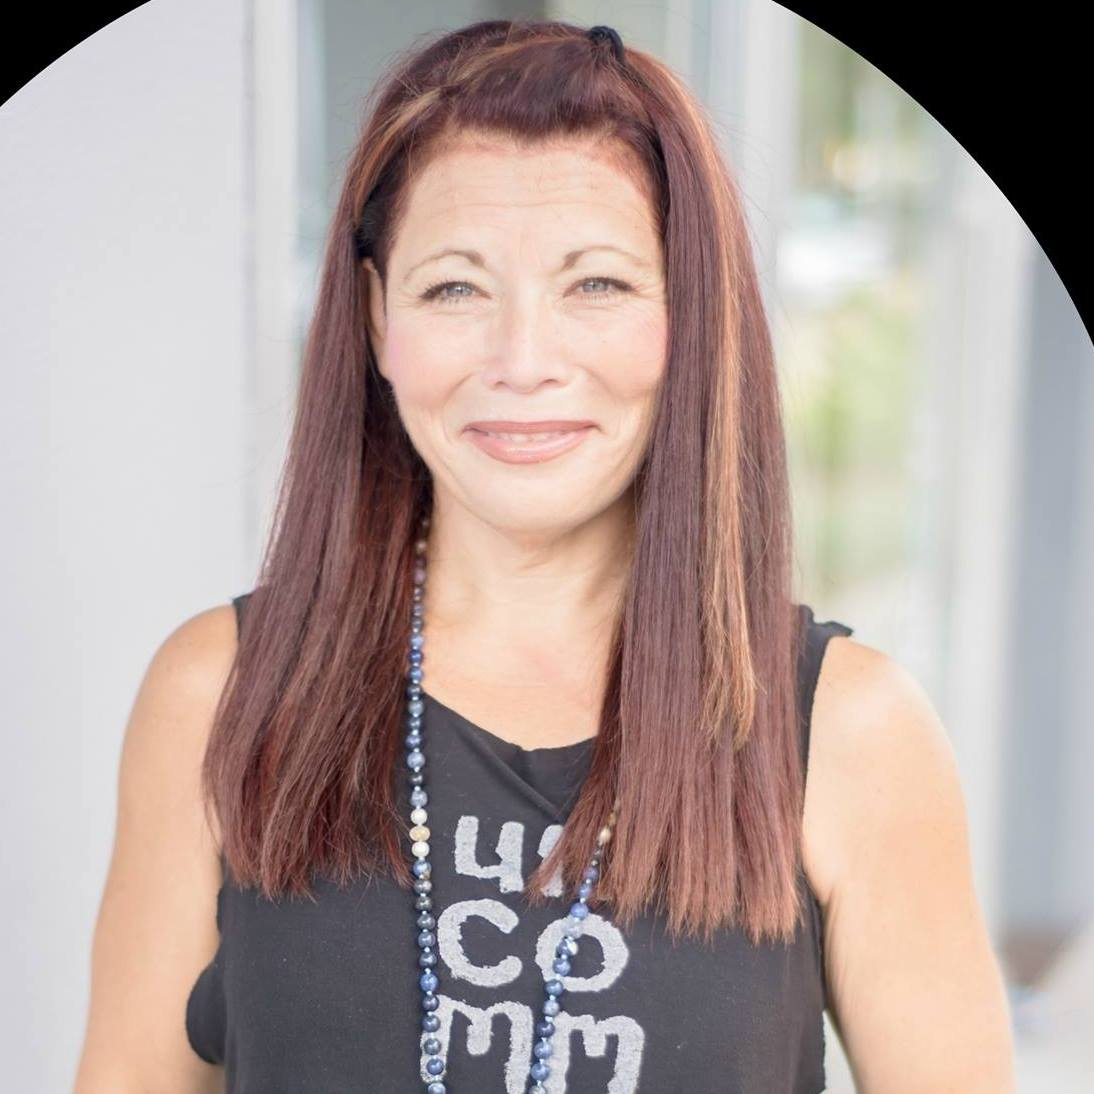 Felicia McQuaid-Reiki Master, Yoga Instructor and Medical Intuitive